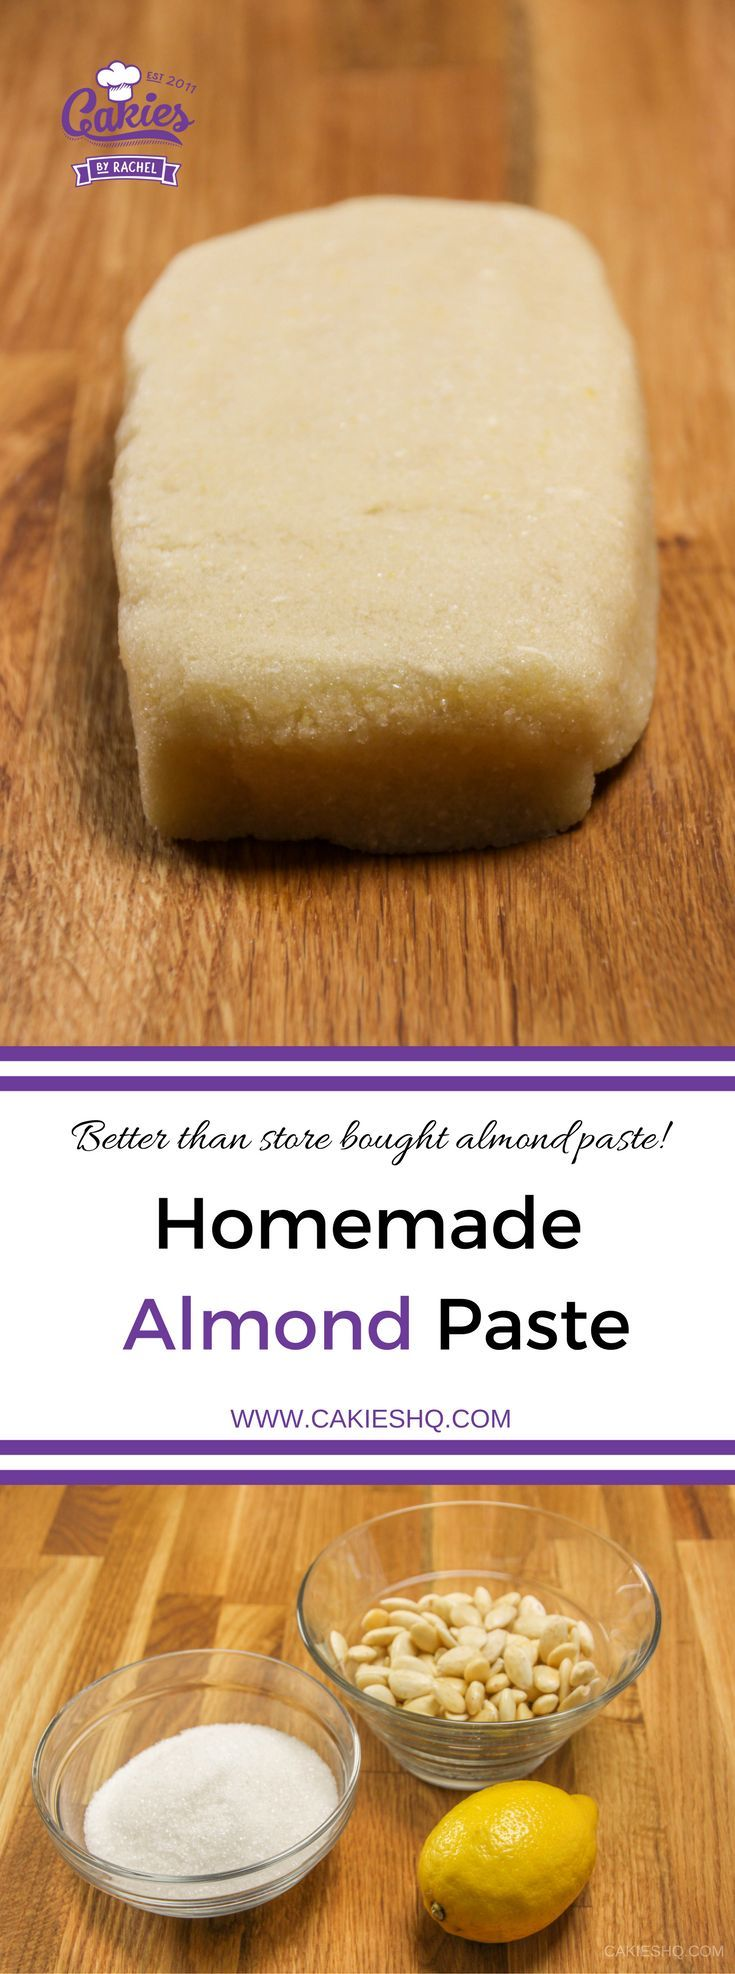 This homemade almond paste recipe is super easy and so much better than the stuff you can buy in the store! Learn how to make almond paste today.